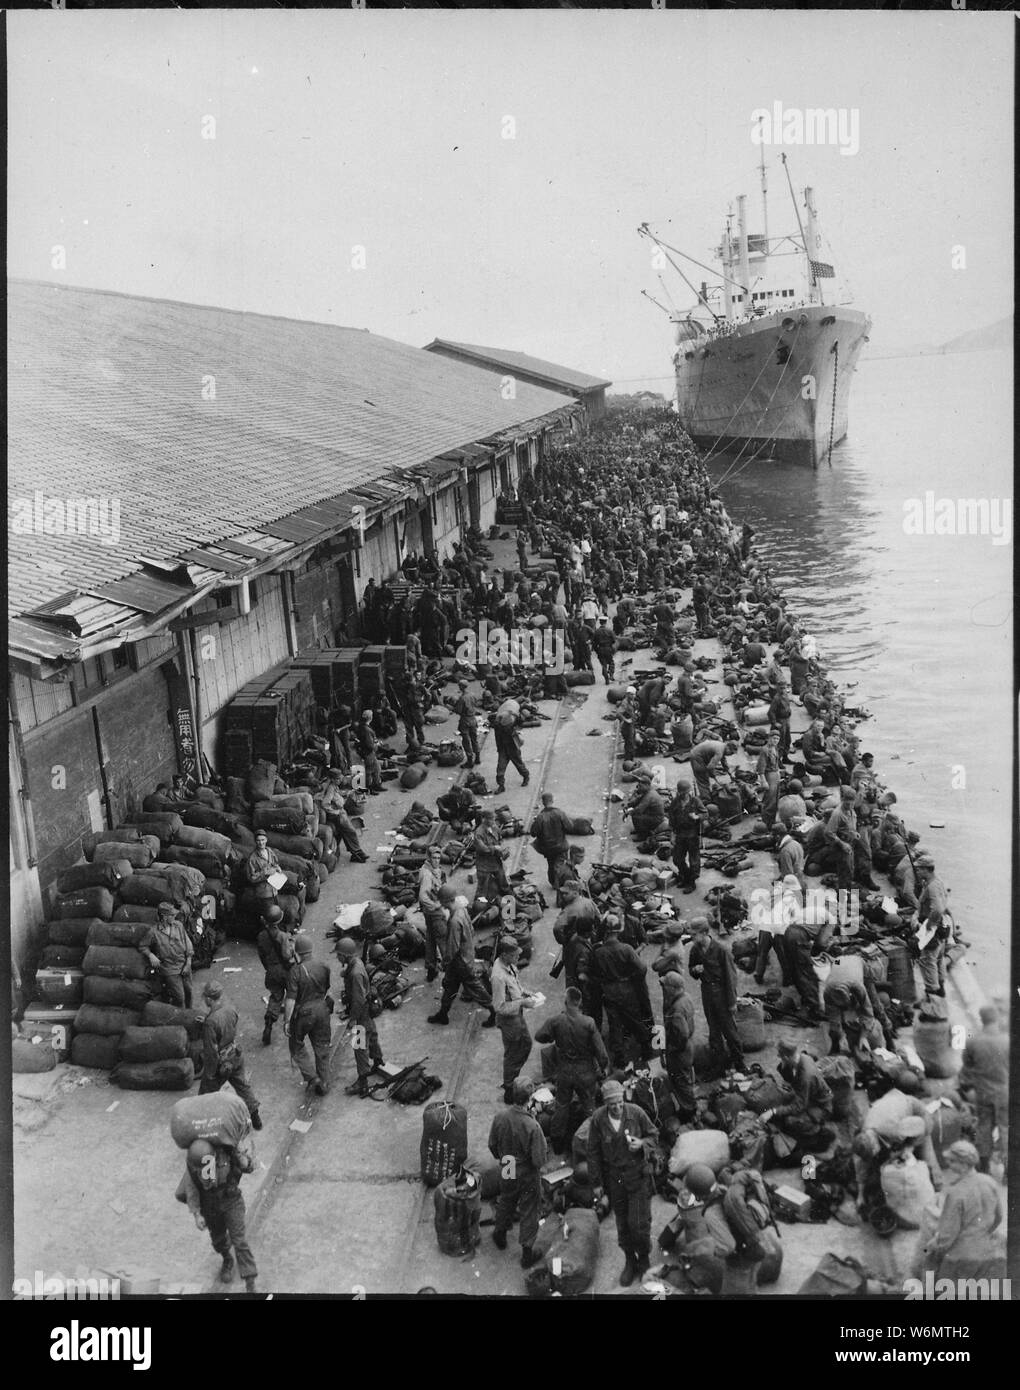 U.S. troops are pictured on pier after debarking from ship, somewhere in Korea.; General notes:  Use War and Conflict Number 1382 when ordering a reproduction or requesting information about this image. Stock Photo